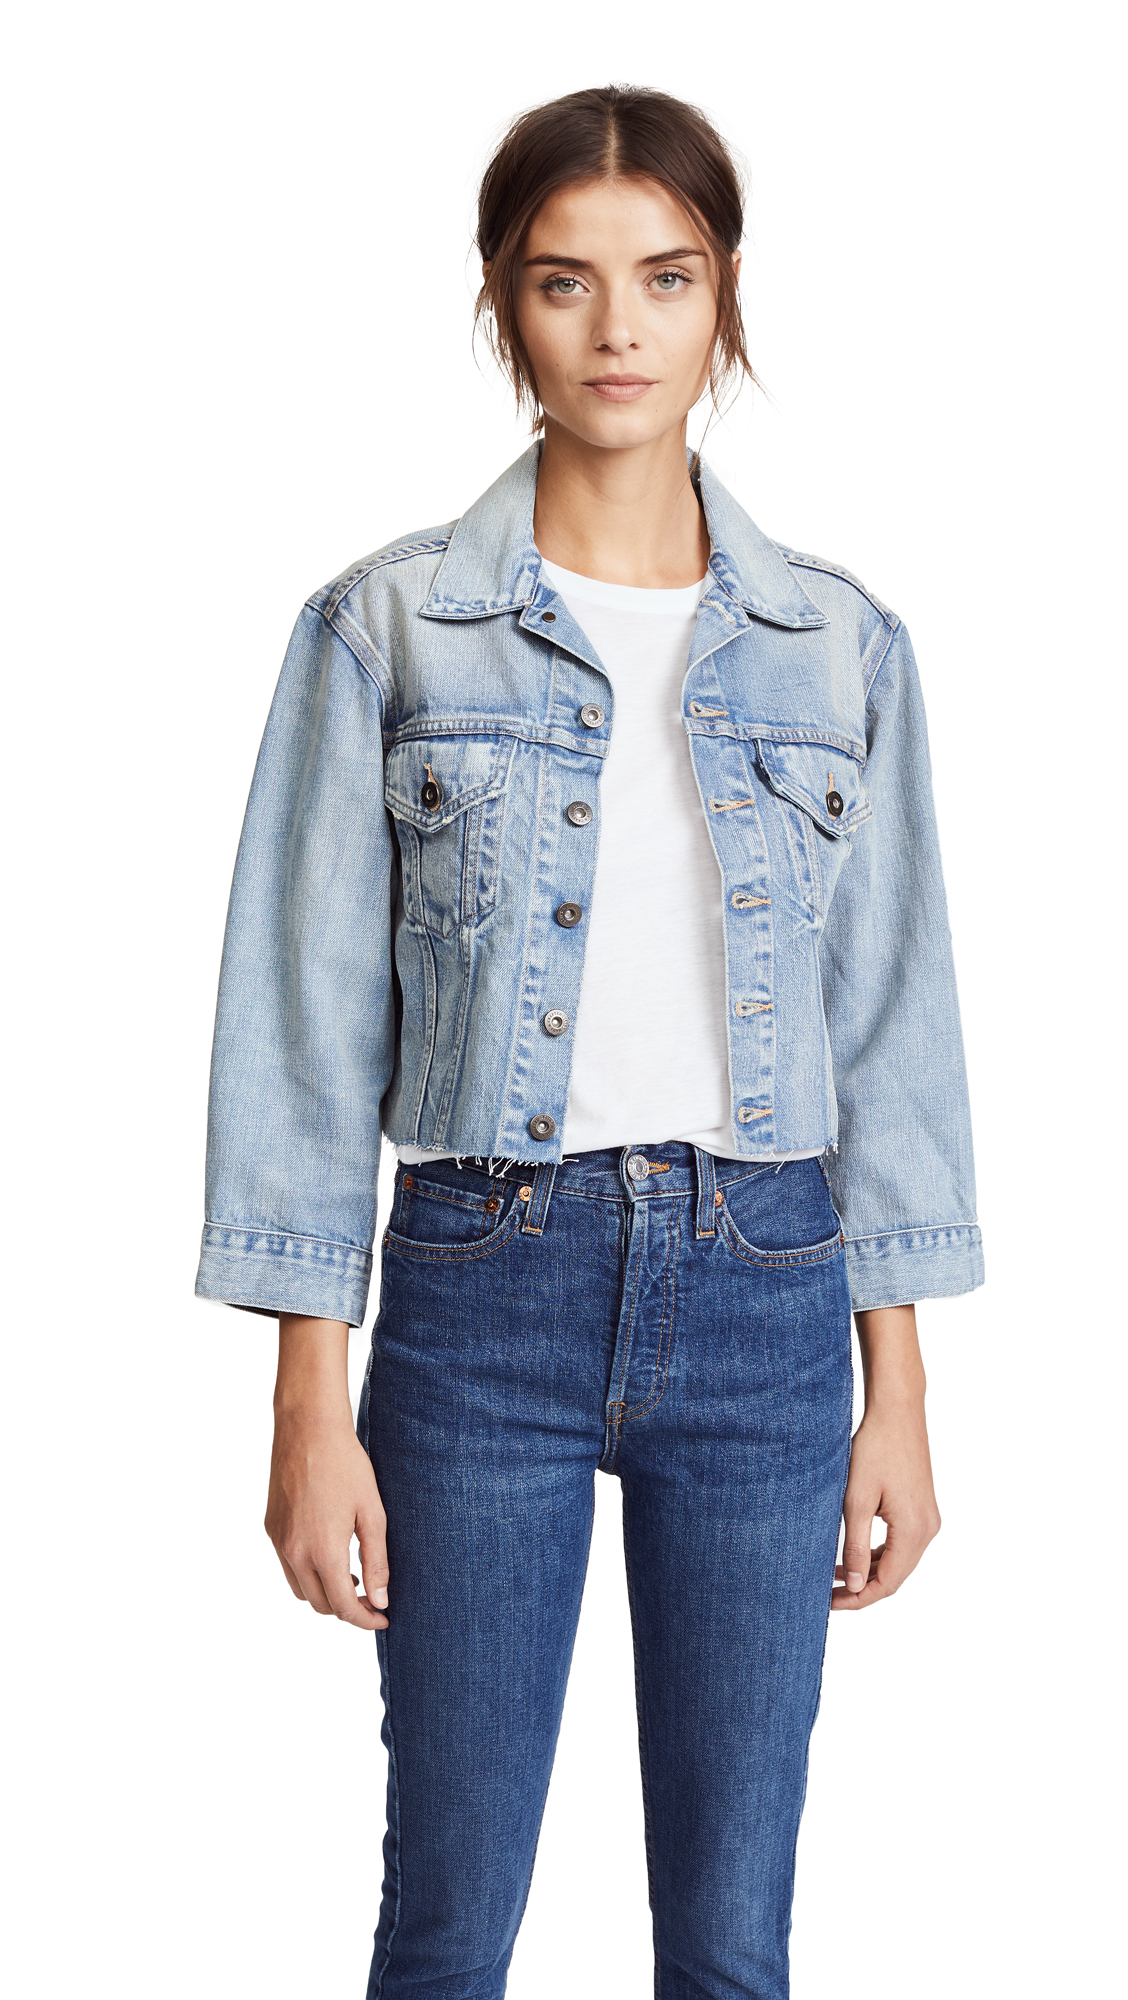 Photo of Levi's LMC x SHOPBOP Cropped BF Trucker Jacket online jackets sales